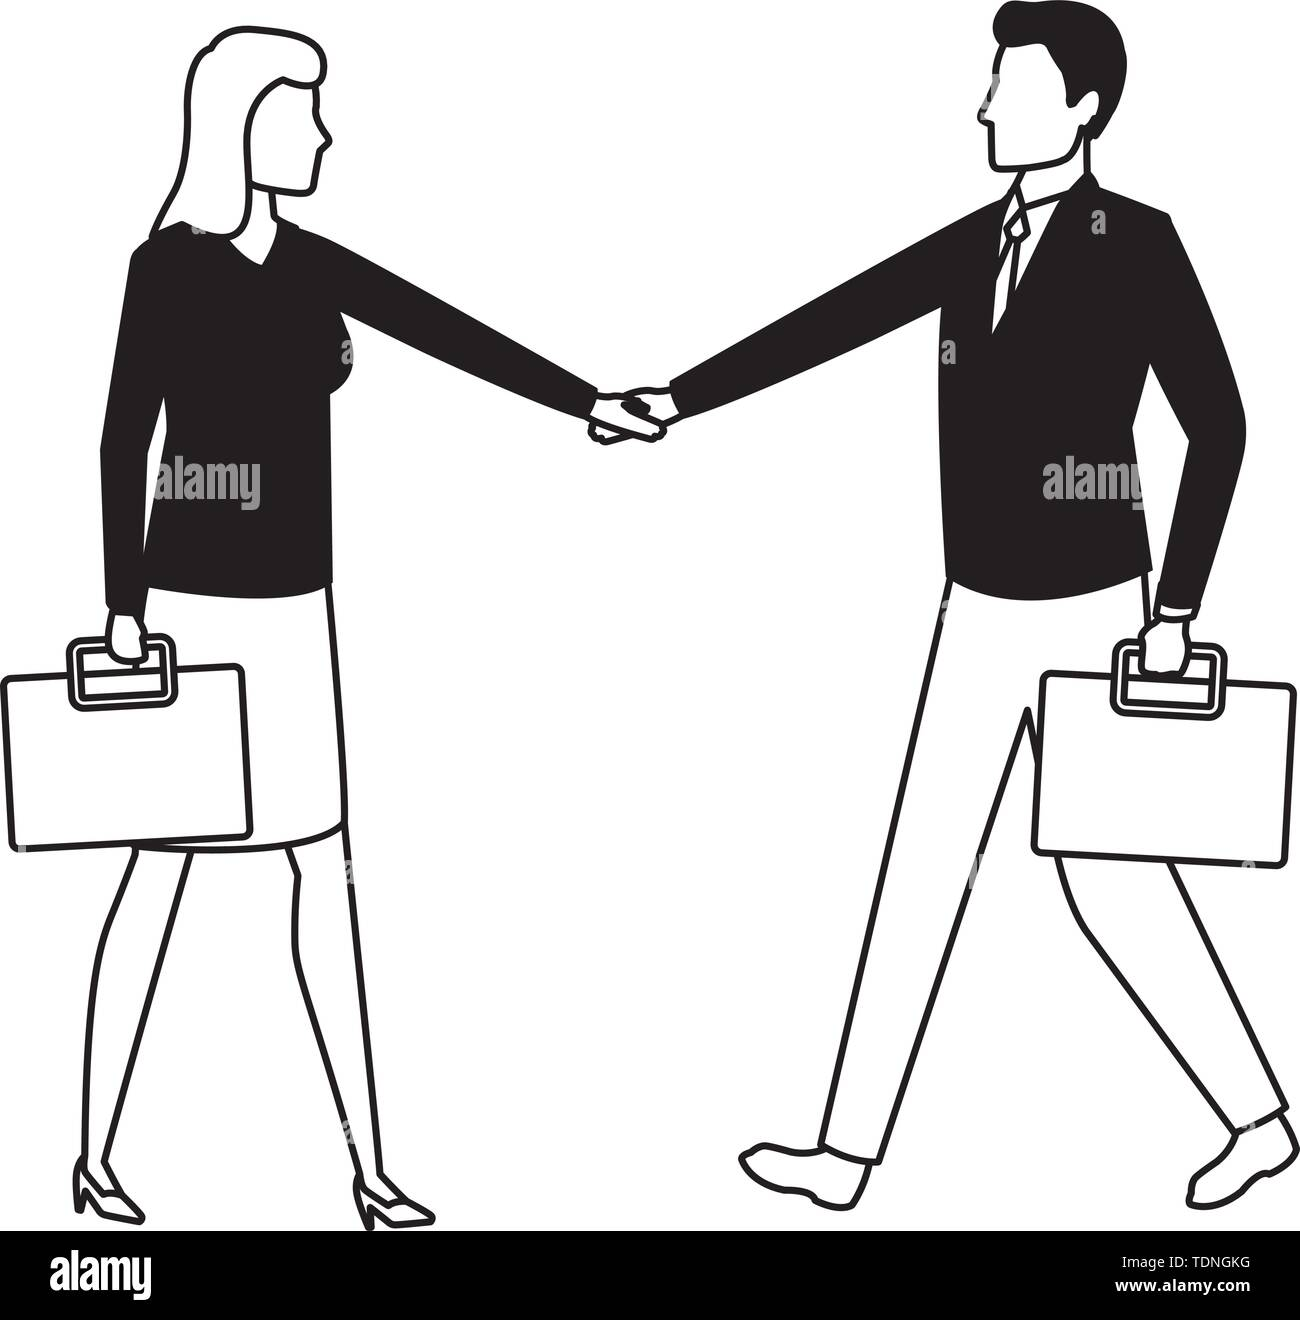 business business people businessman and businesswoman shaking hands and carrying a briefcase avatar cartoon character in black and white - Stock Image